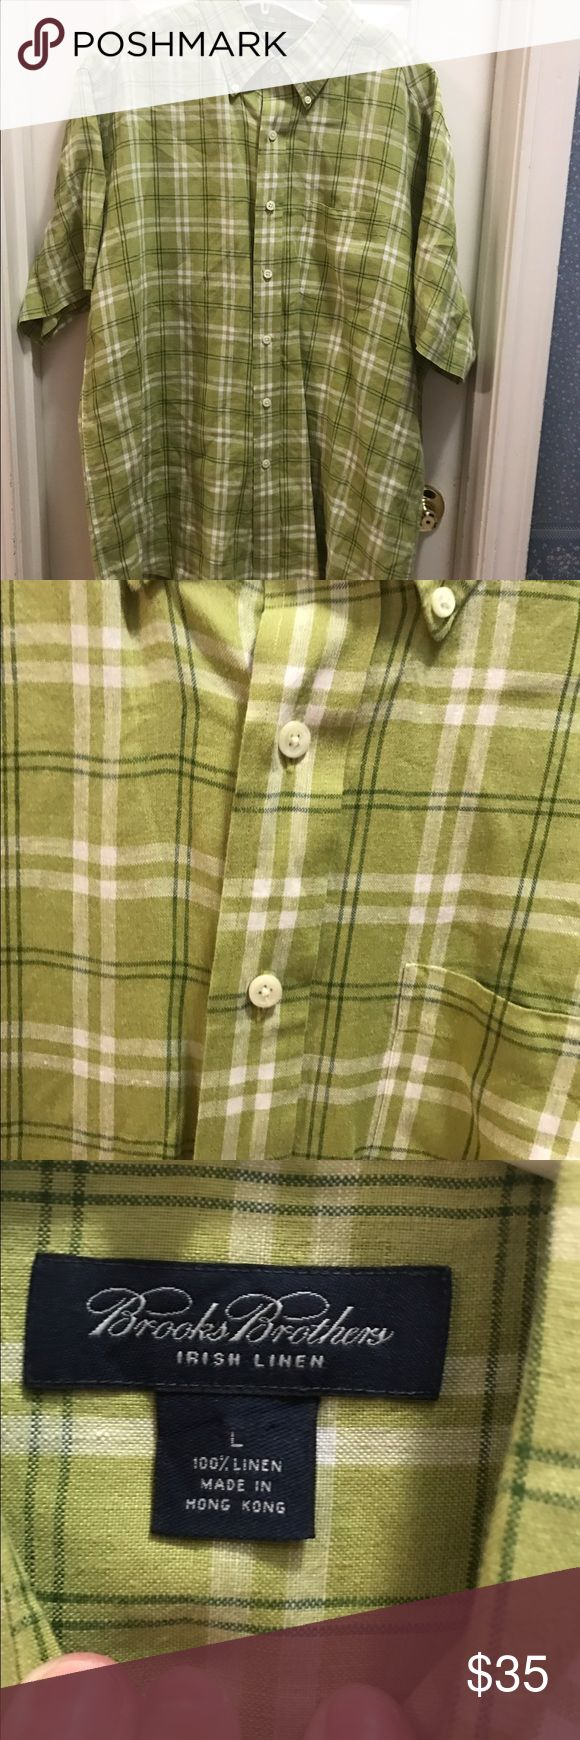 NWOT 💙BROOKS BROTHERS💙Men's Linen shirt NWOT ** BROOKS BROTHERS** Irish Linen Shirt. Lime green shirt with dark green and white stripes. Size L Brooks Brothers Shirts Casual Button Down Shirts